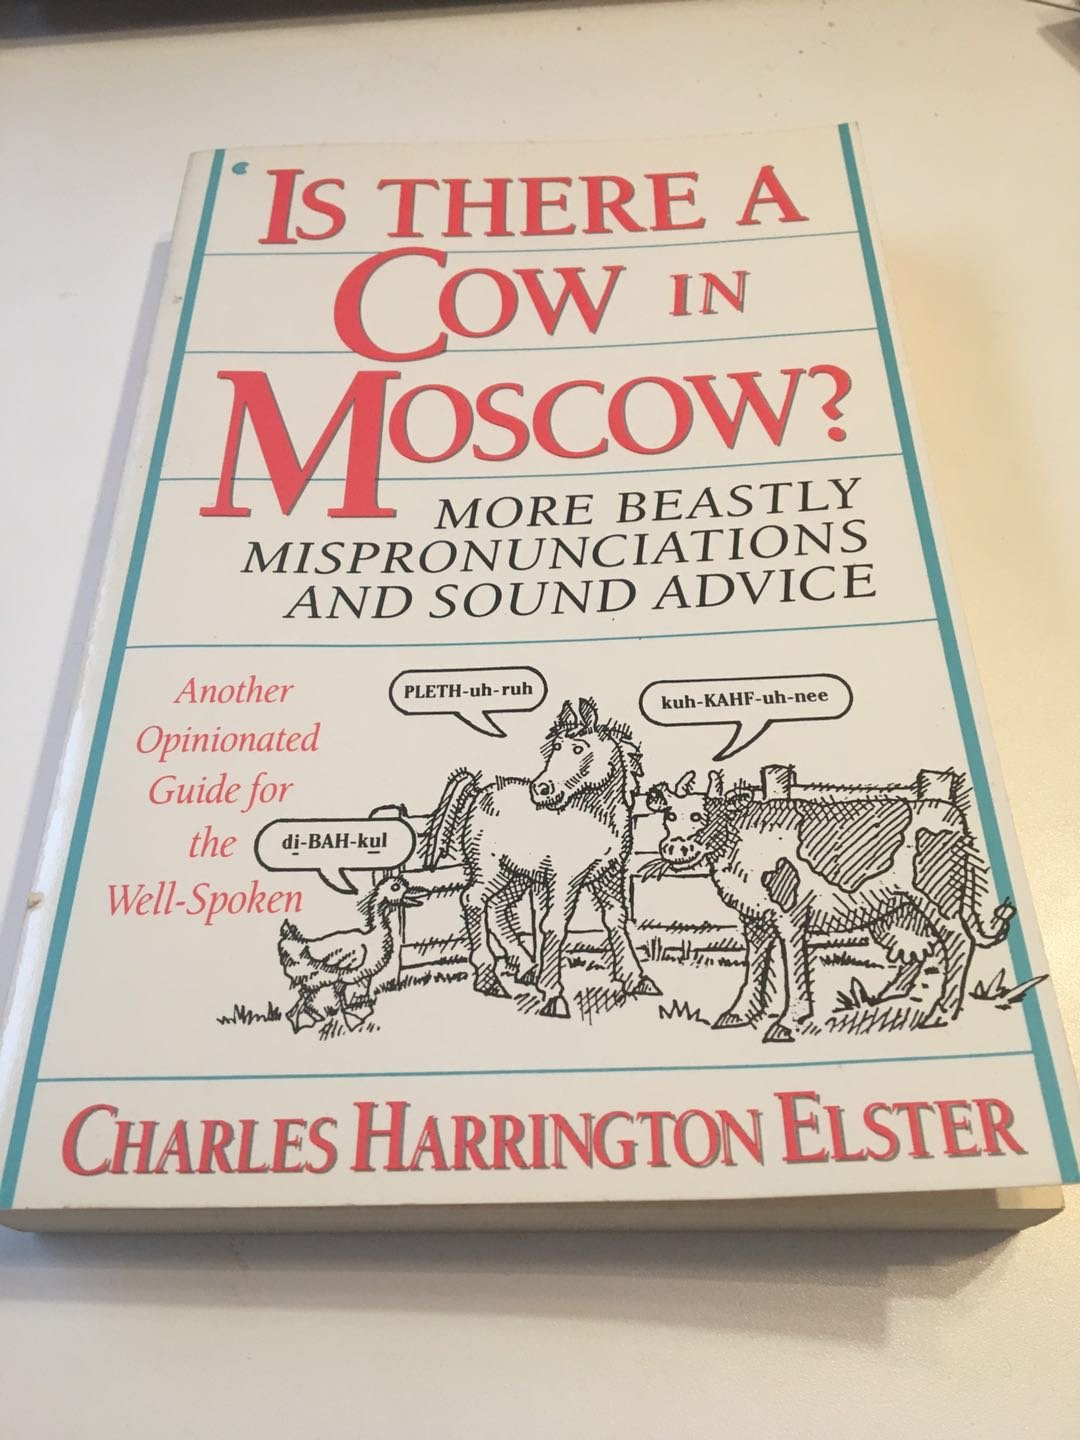 Is There a Cow in Moscow?: More Beastly Mispronunciations and Sound Advice 1990 by Elster